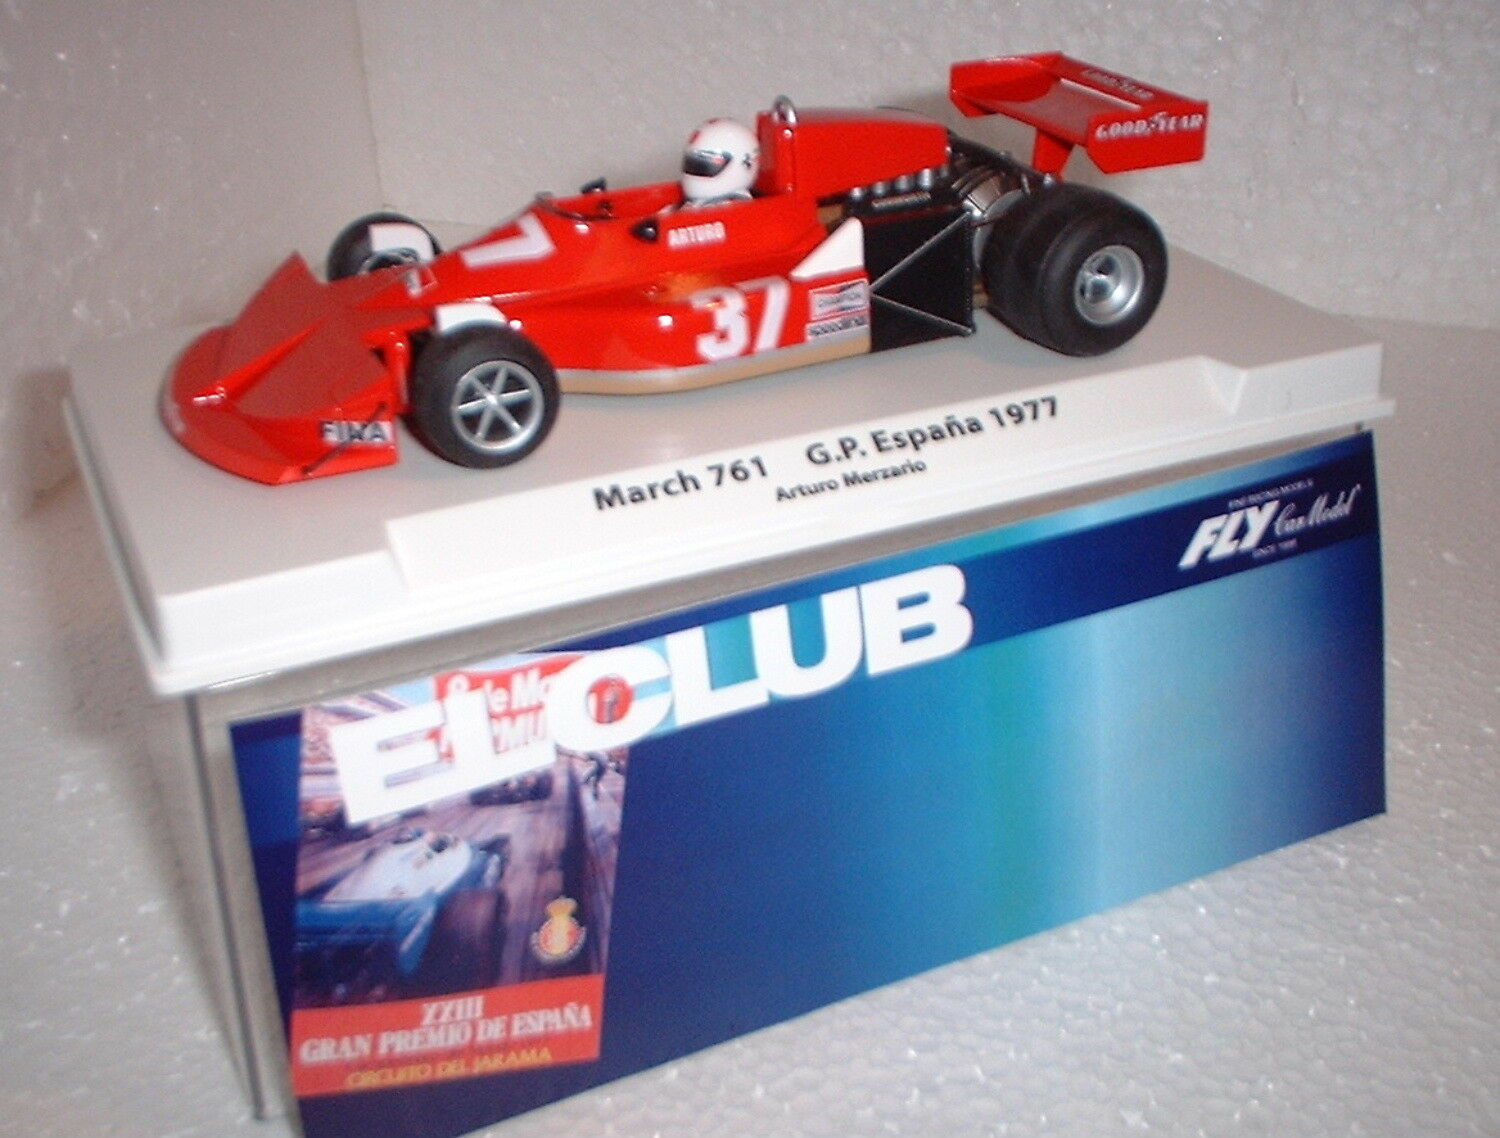 Qq 99136 FLY MARCH 761 - F1 LIVINGWELL ED SPECIAL GP SPAIN 1977 TO MERZARIO